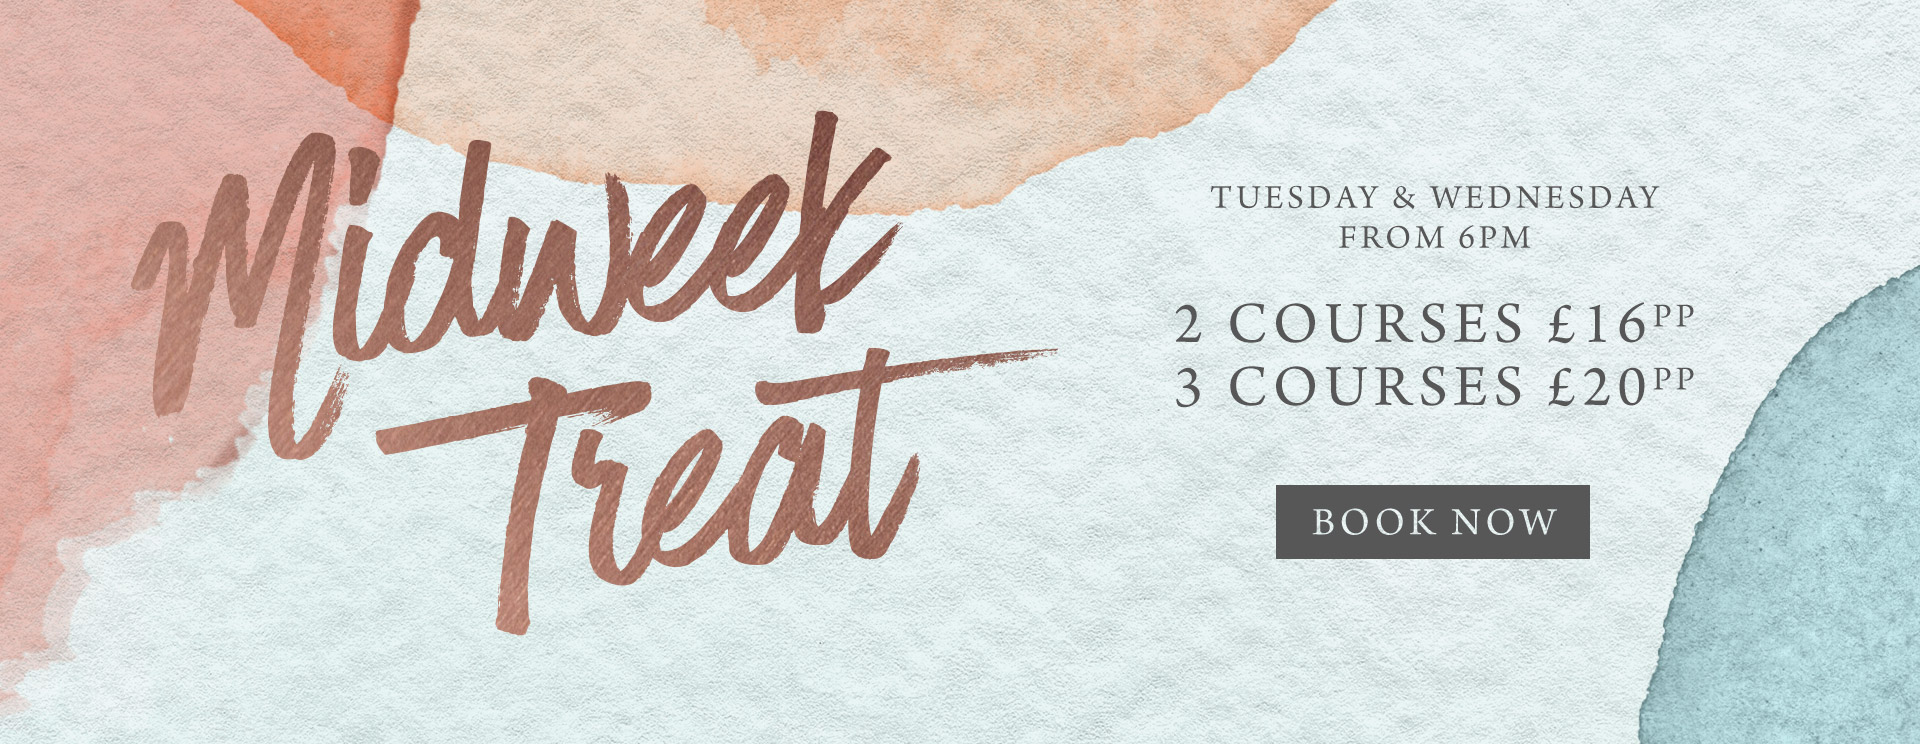 Midweek treat at The Tudor Rose - Book now